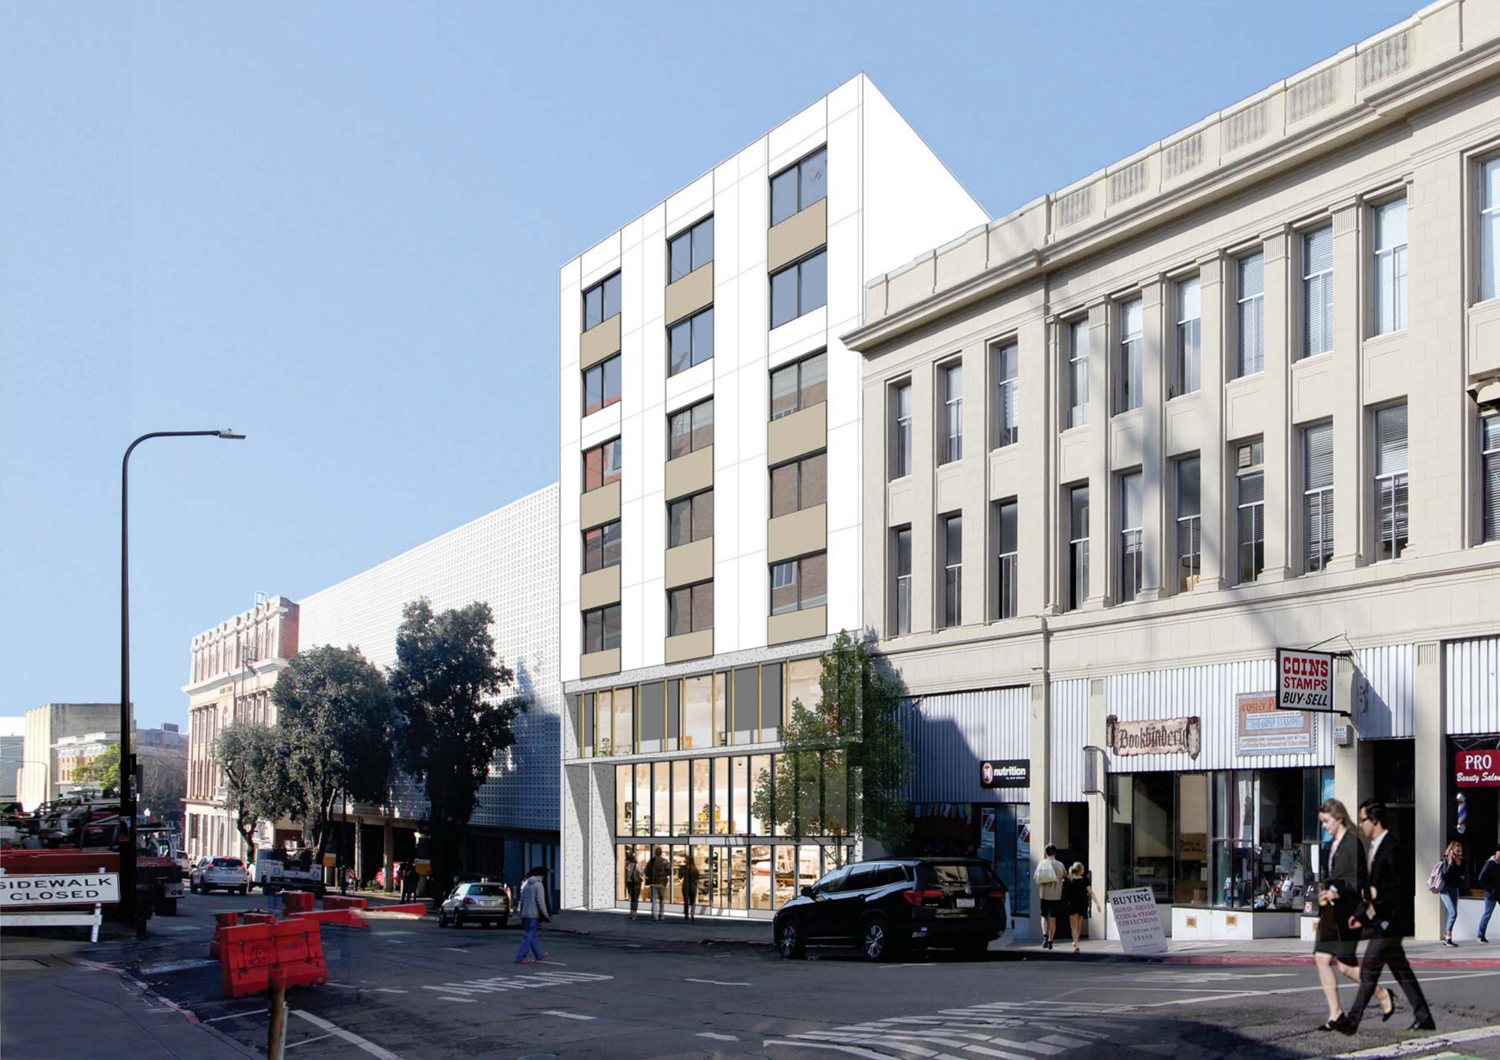 2176 and 2150 Kittredge Street view along Bancroft Way, rendering design by Kava Massih Architects